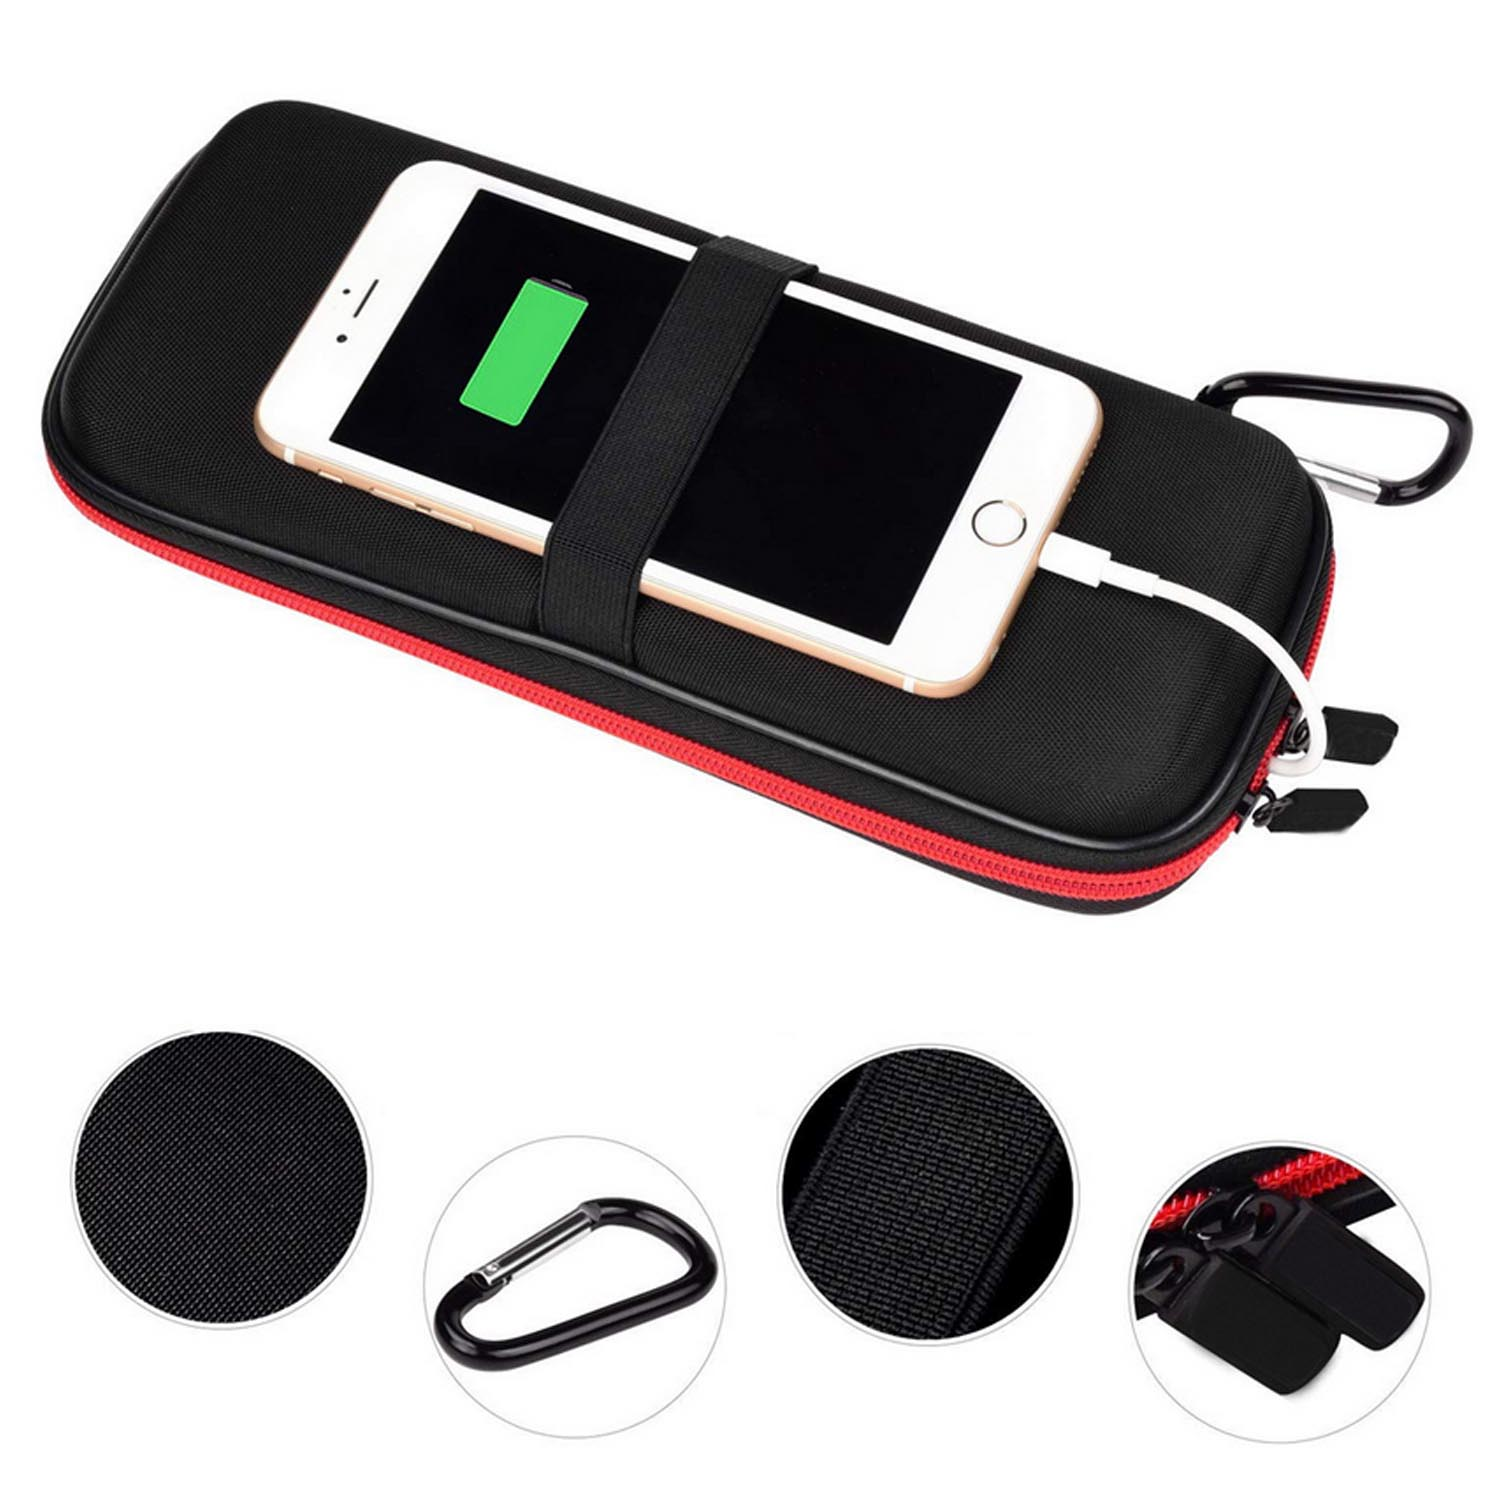 Besegad Portable Travel Hard EVA Shockproof Carrying Bag <font><b>Case</b></font> Pouch Storage Box for External <font><b>Battery</b></font> Pack Power Bank image